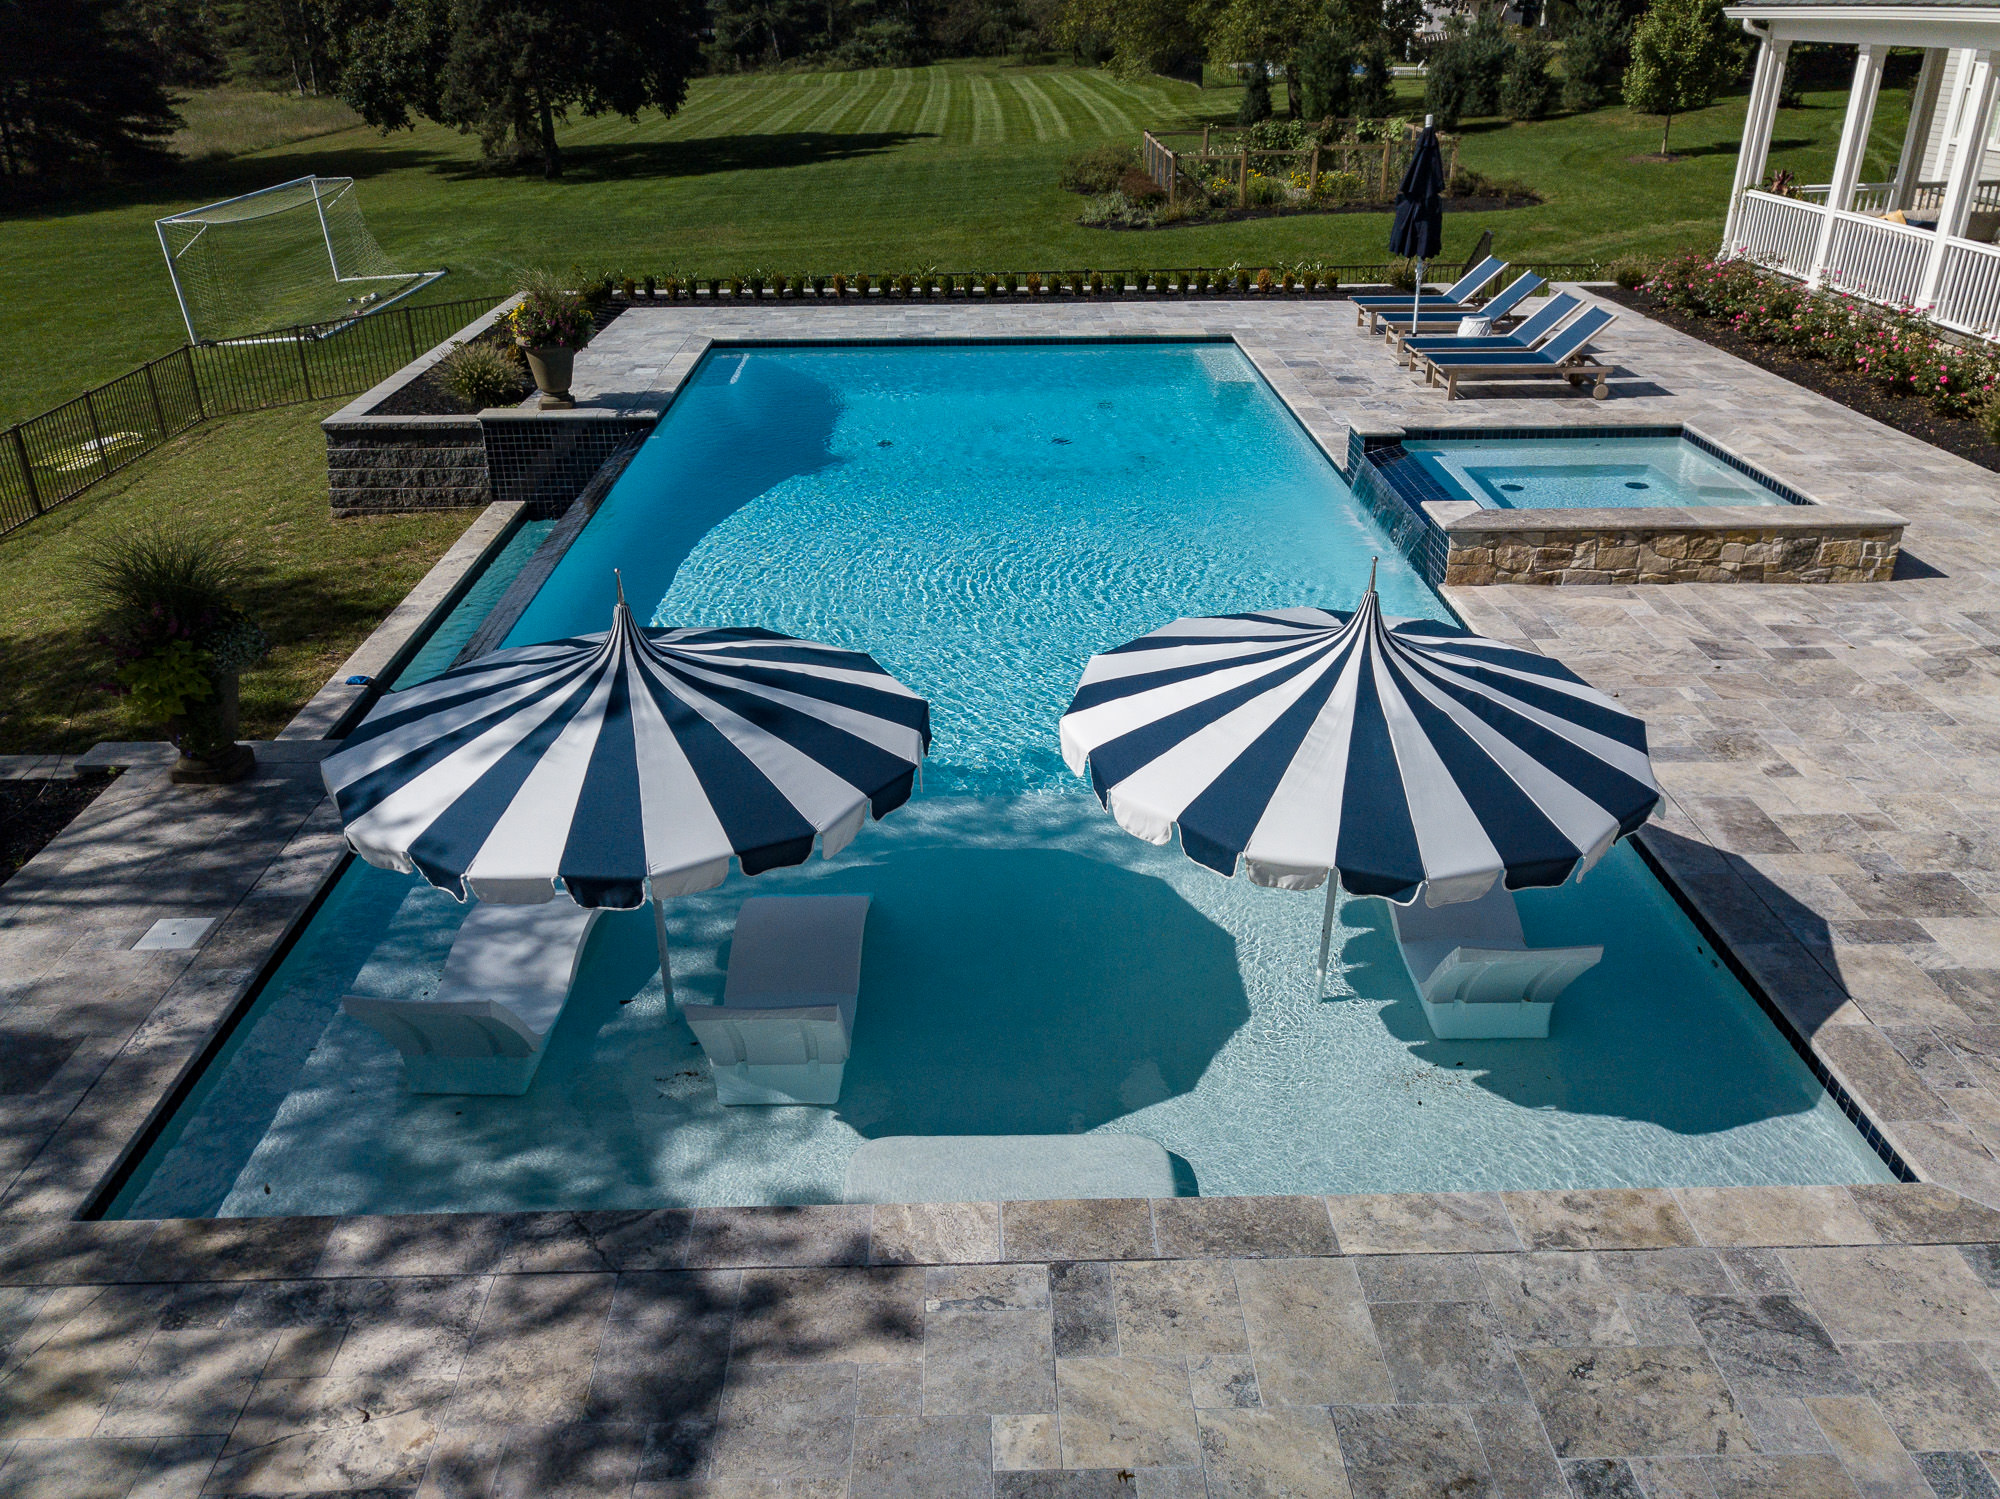 Inground Pool Design and Build in Montgomery NJ by Pools